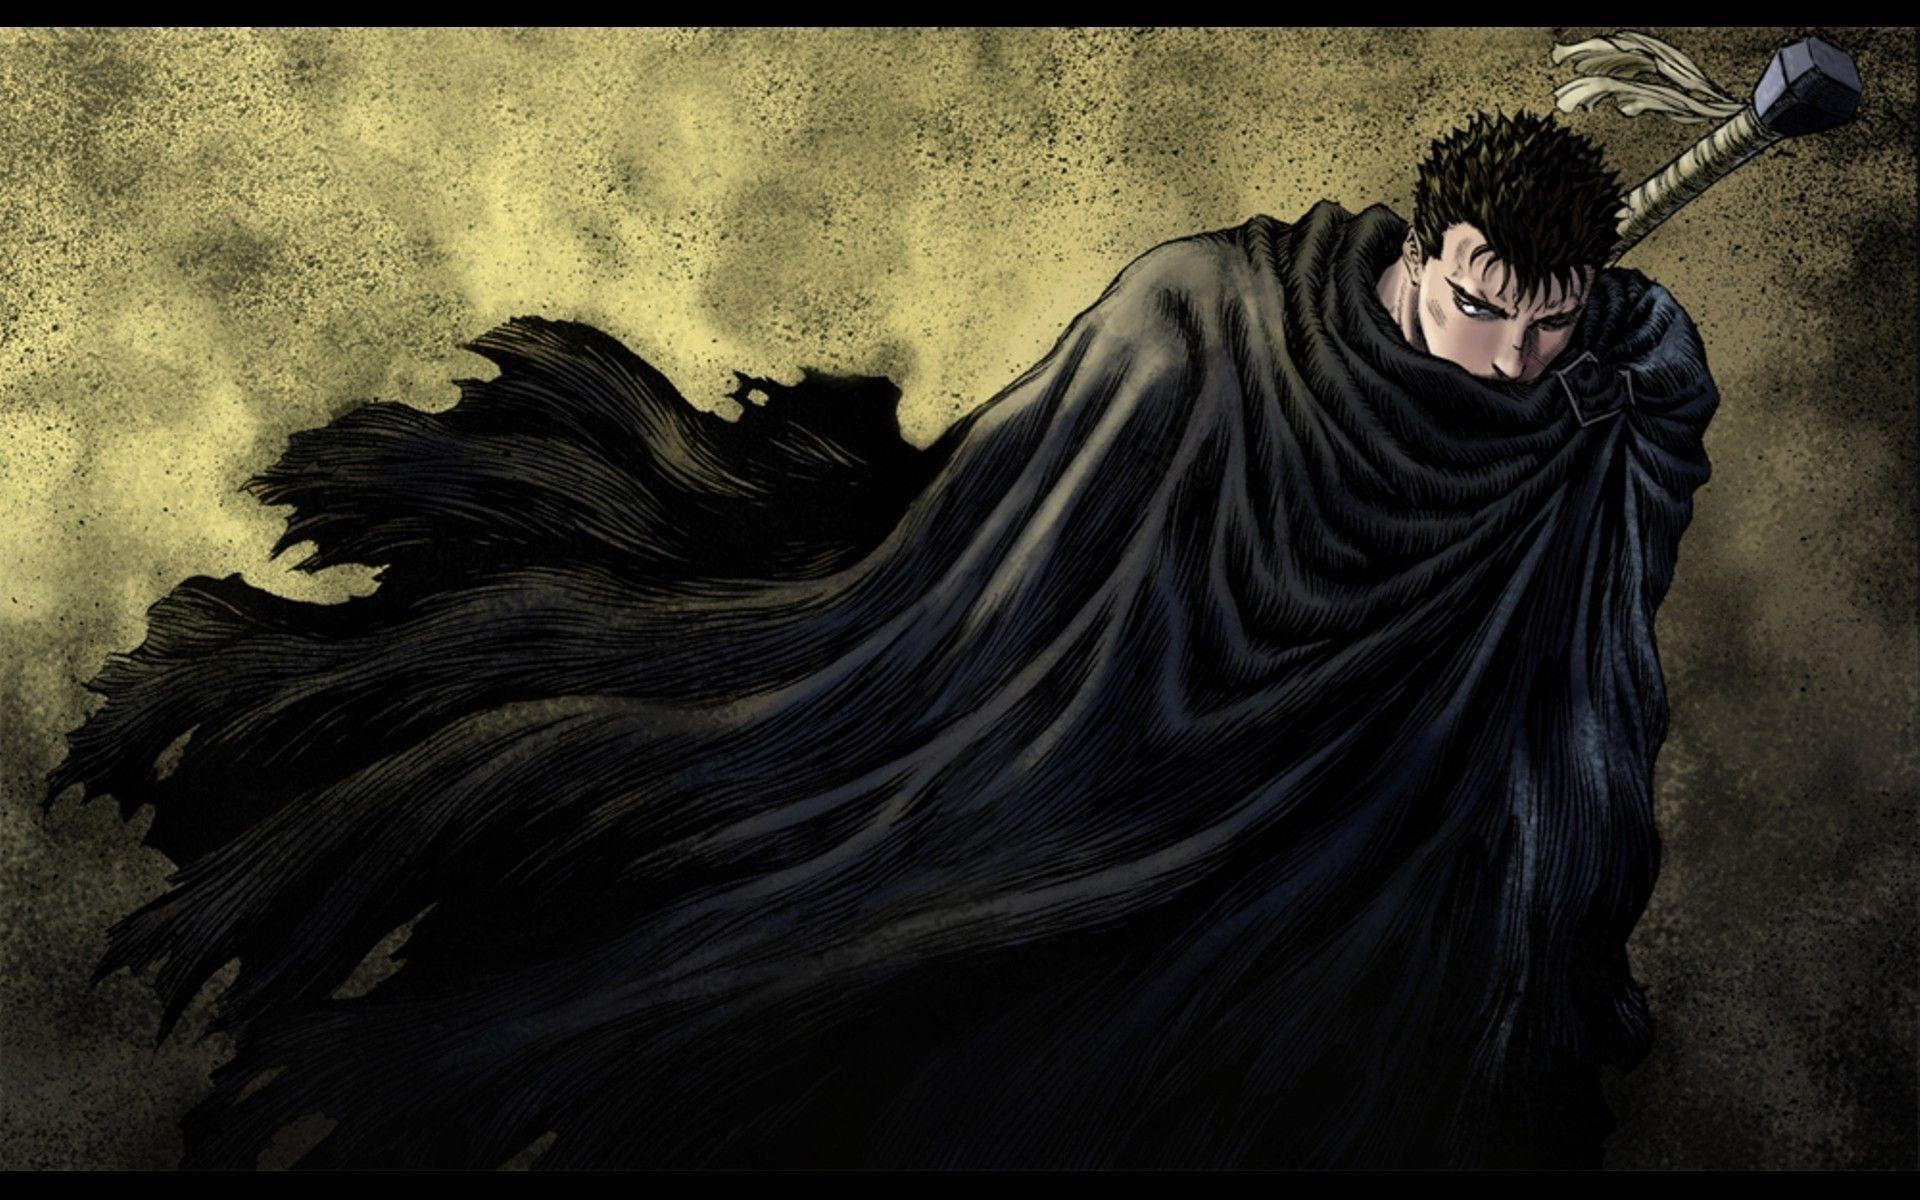 Image Result For Berserk Manga Hd Wallpaper